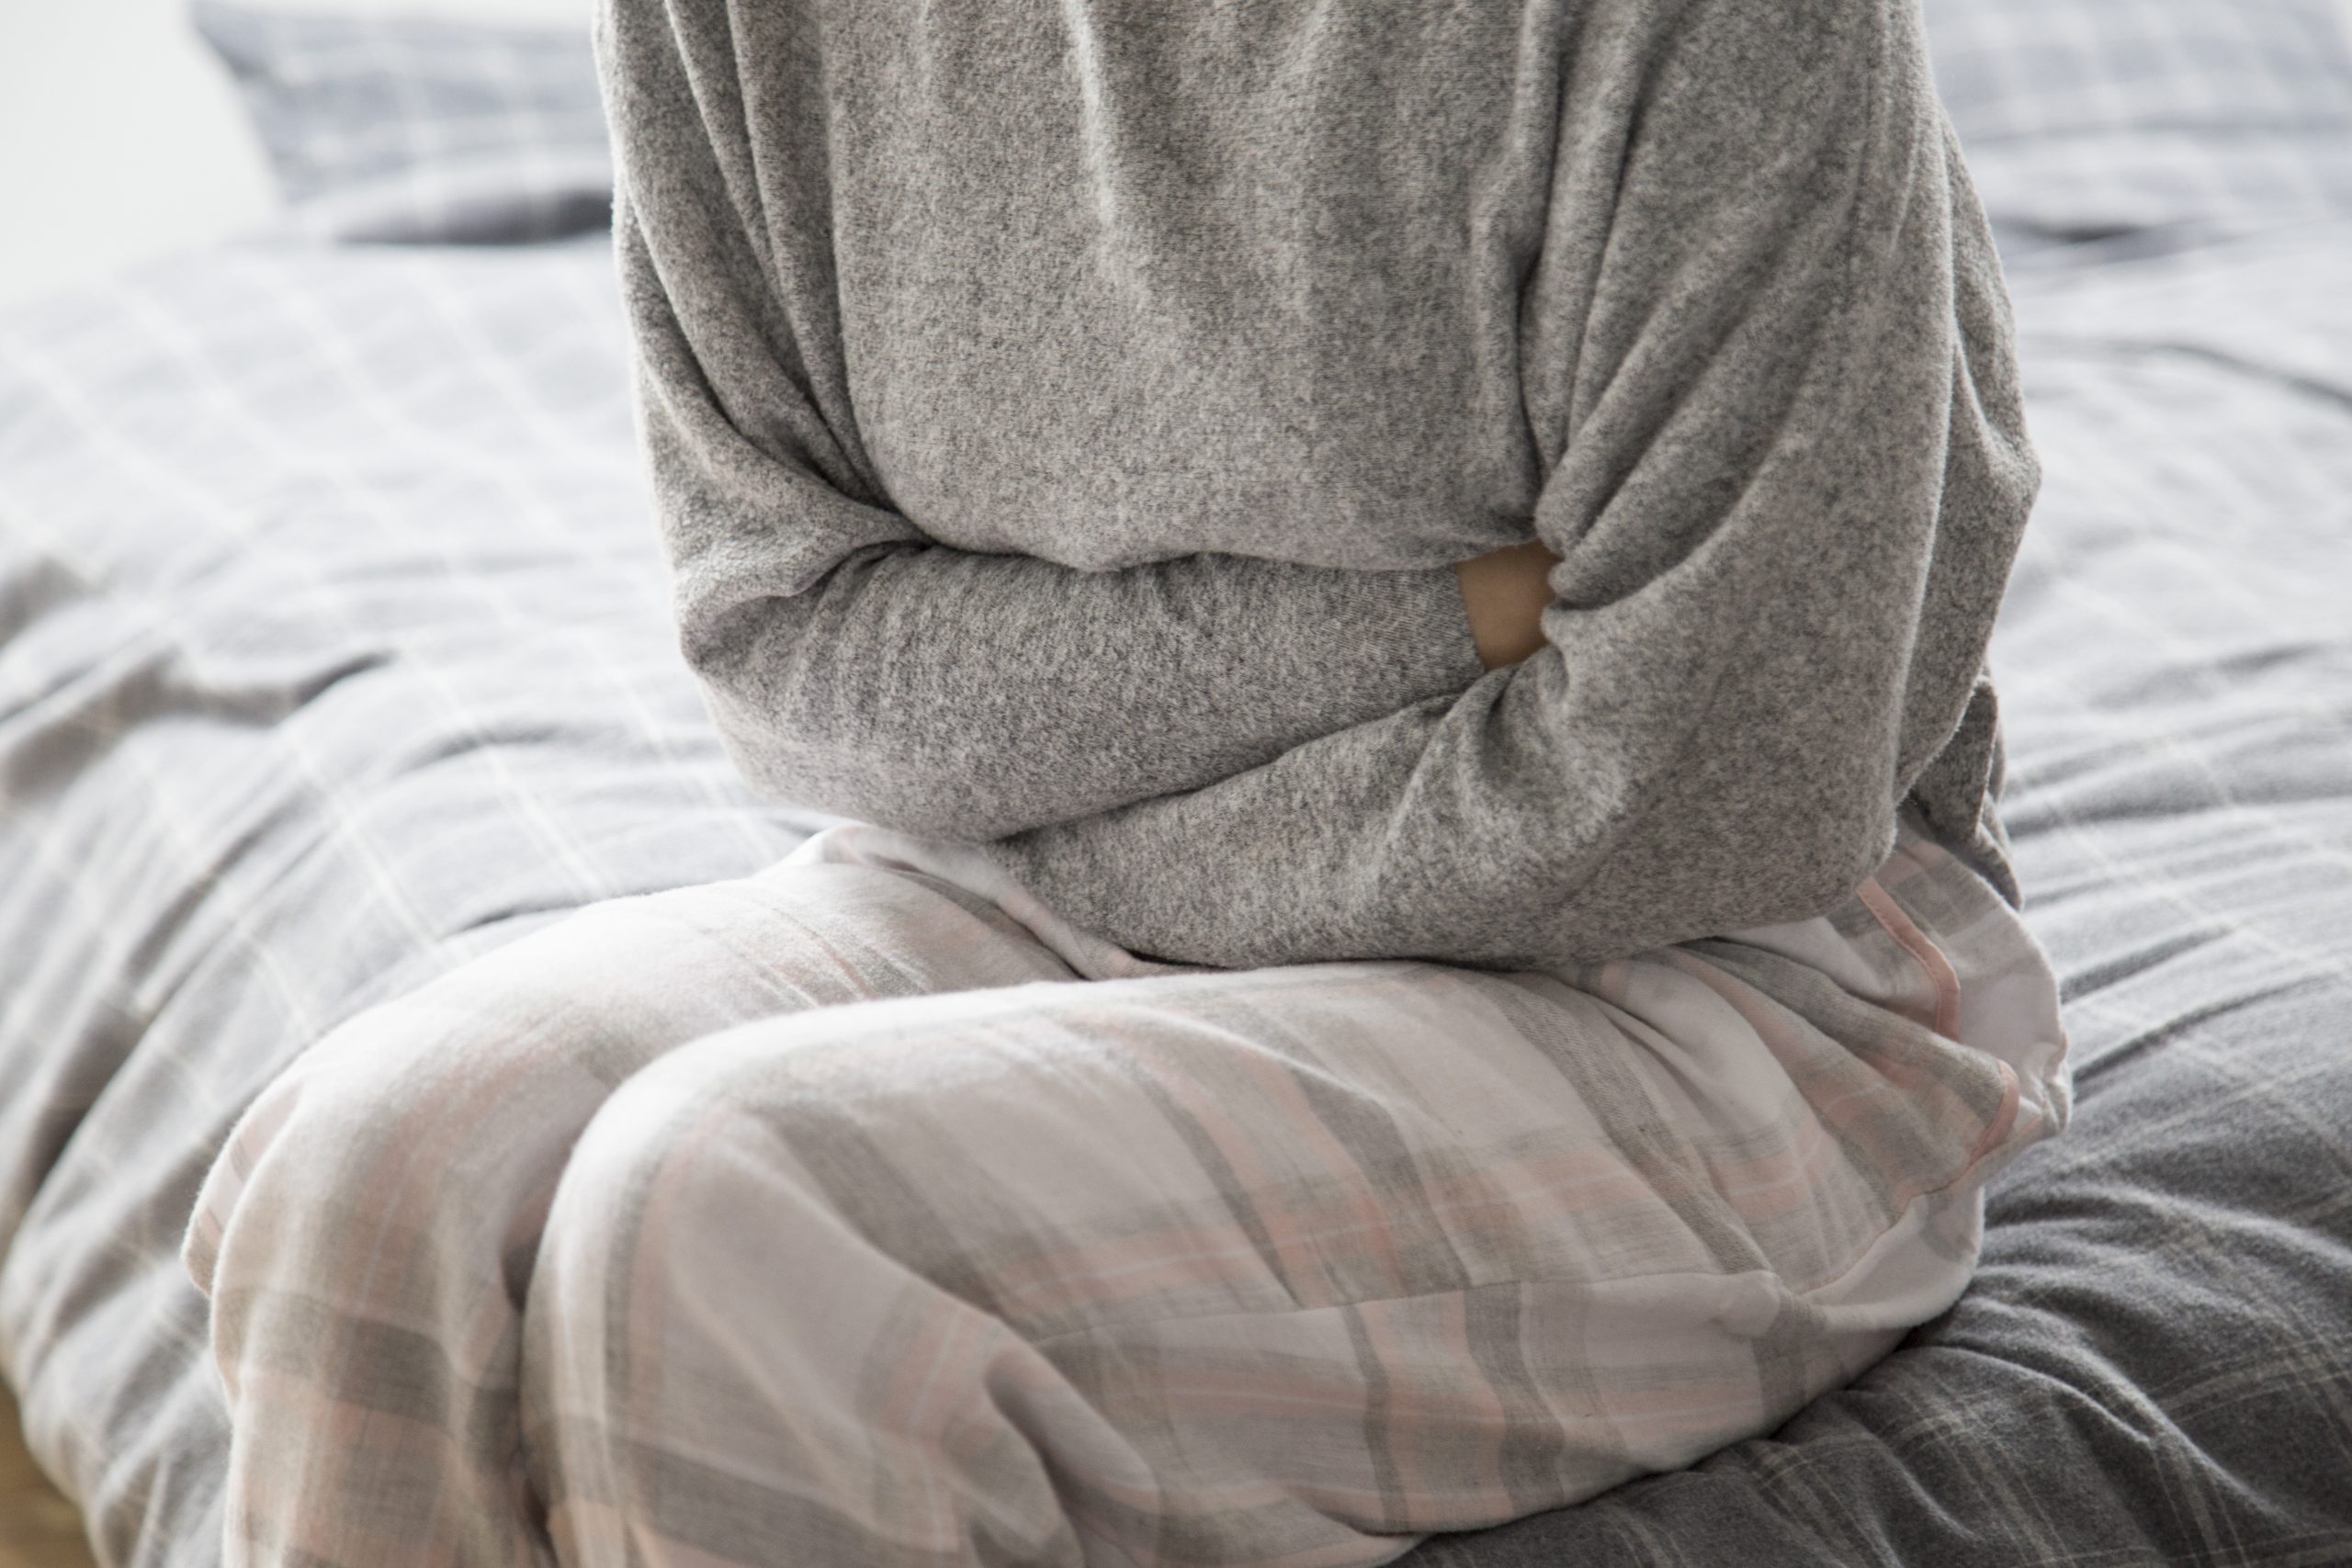 Woman in pajamas sitting on bed holding stomach in pain